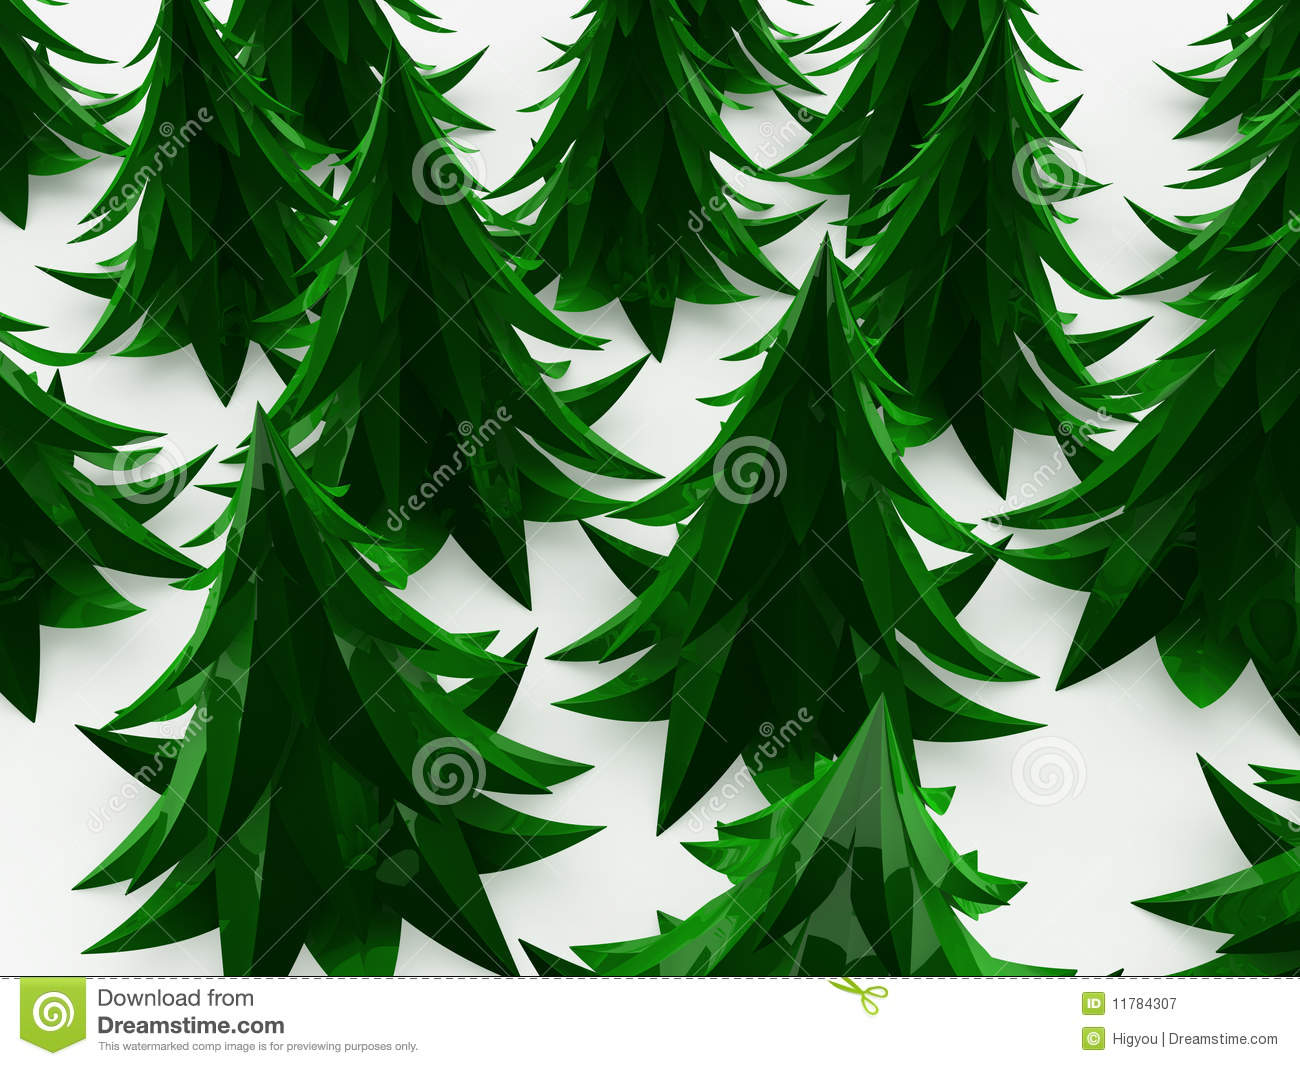 Cartoon Fir Forest Royalty Free Stock Photography - Image: 11784307: dreamstime.com/royalty-free-stock-photography-cartoon-fir-forest...